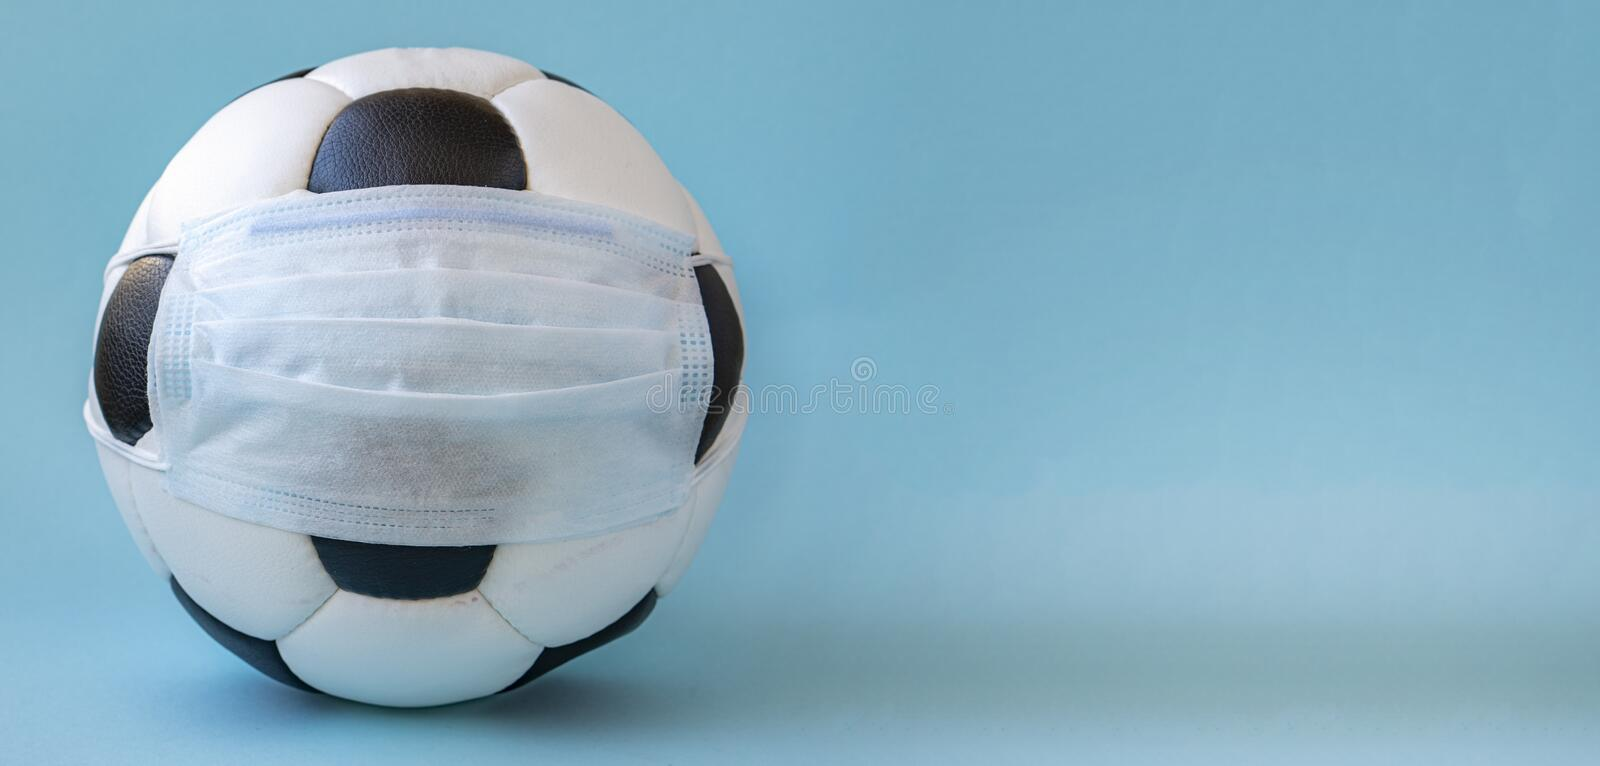 Soccer ball in a medical mask on a blue background. Corona protection against viruses bacteria stop. Cancellation of sporting events.Copy space royalty free stock photos